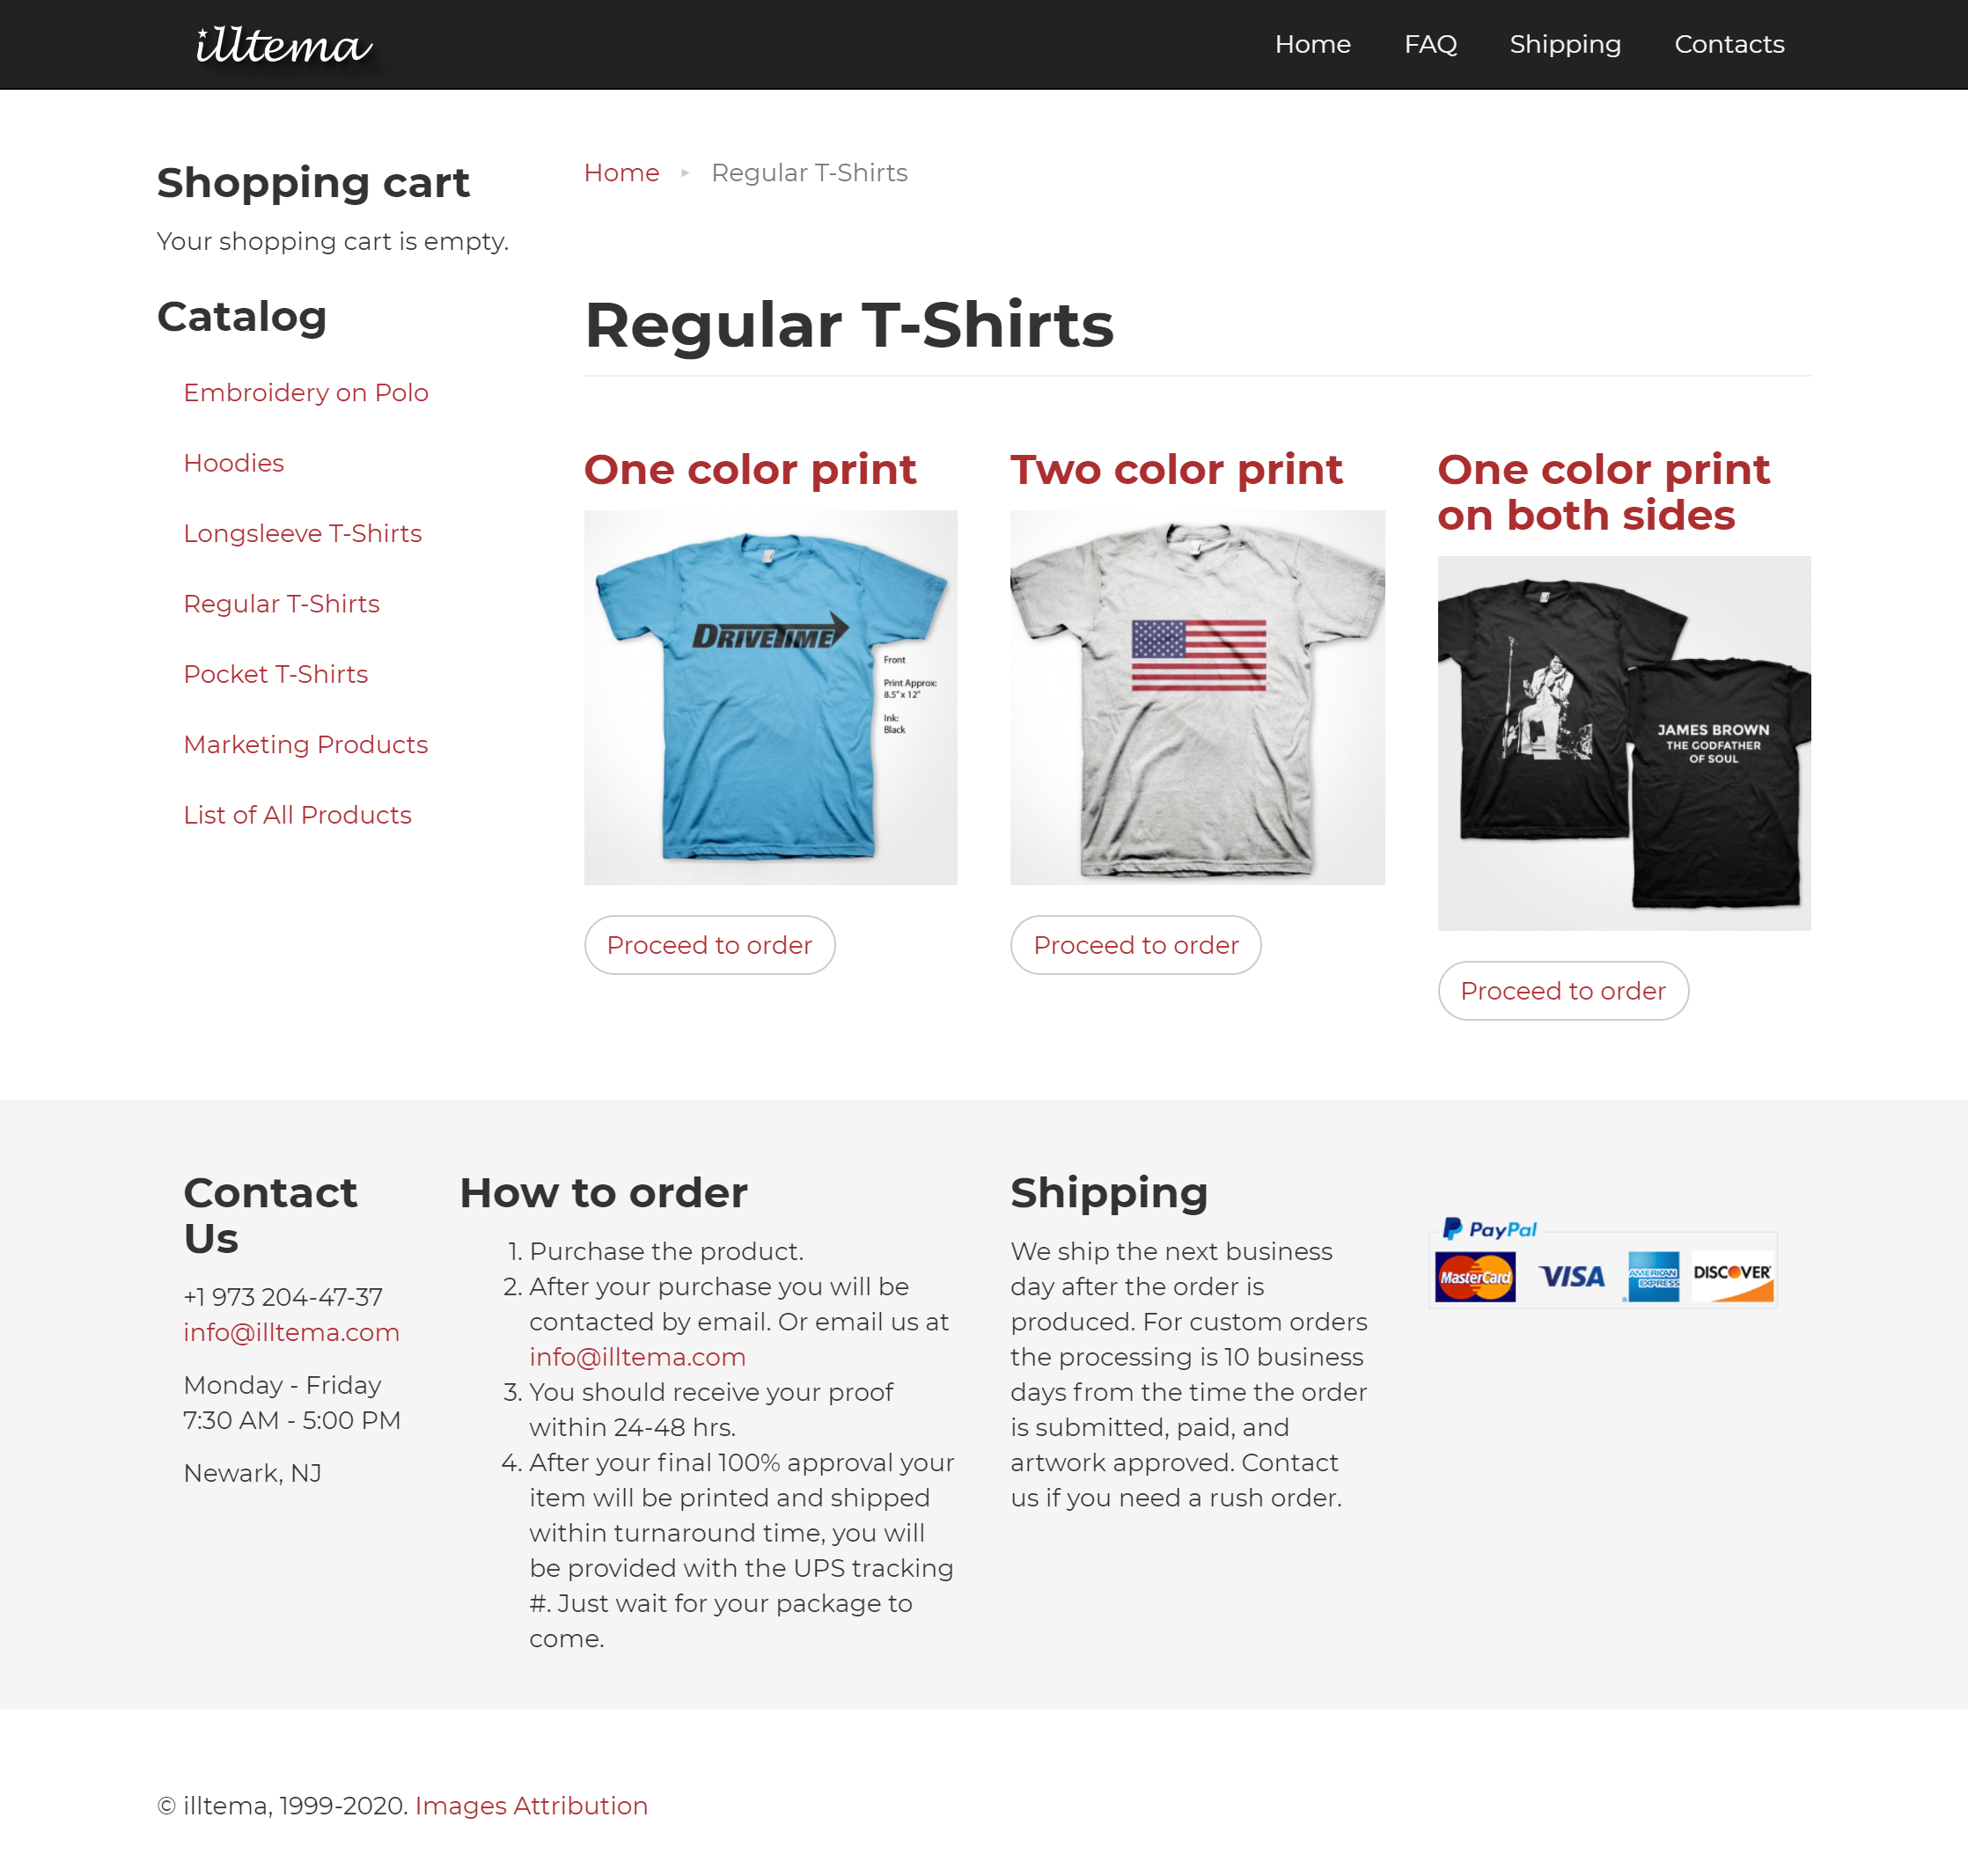 illtema.com_regular-t-shirts